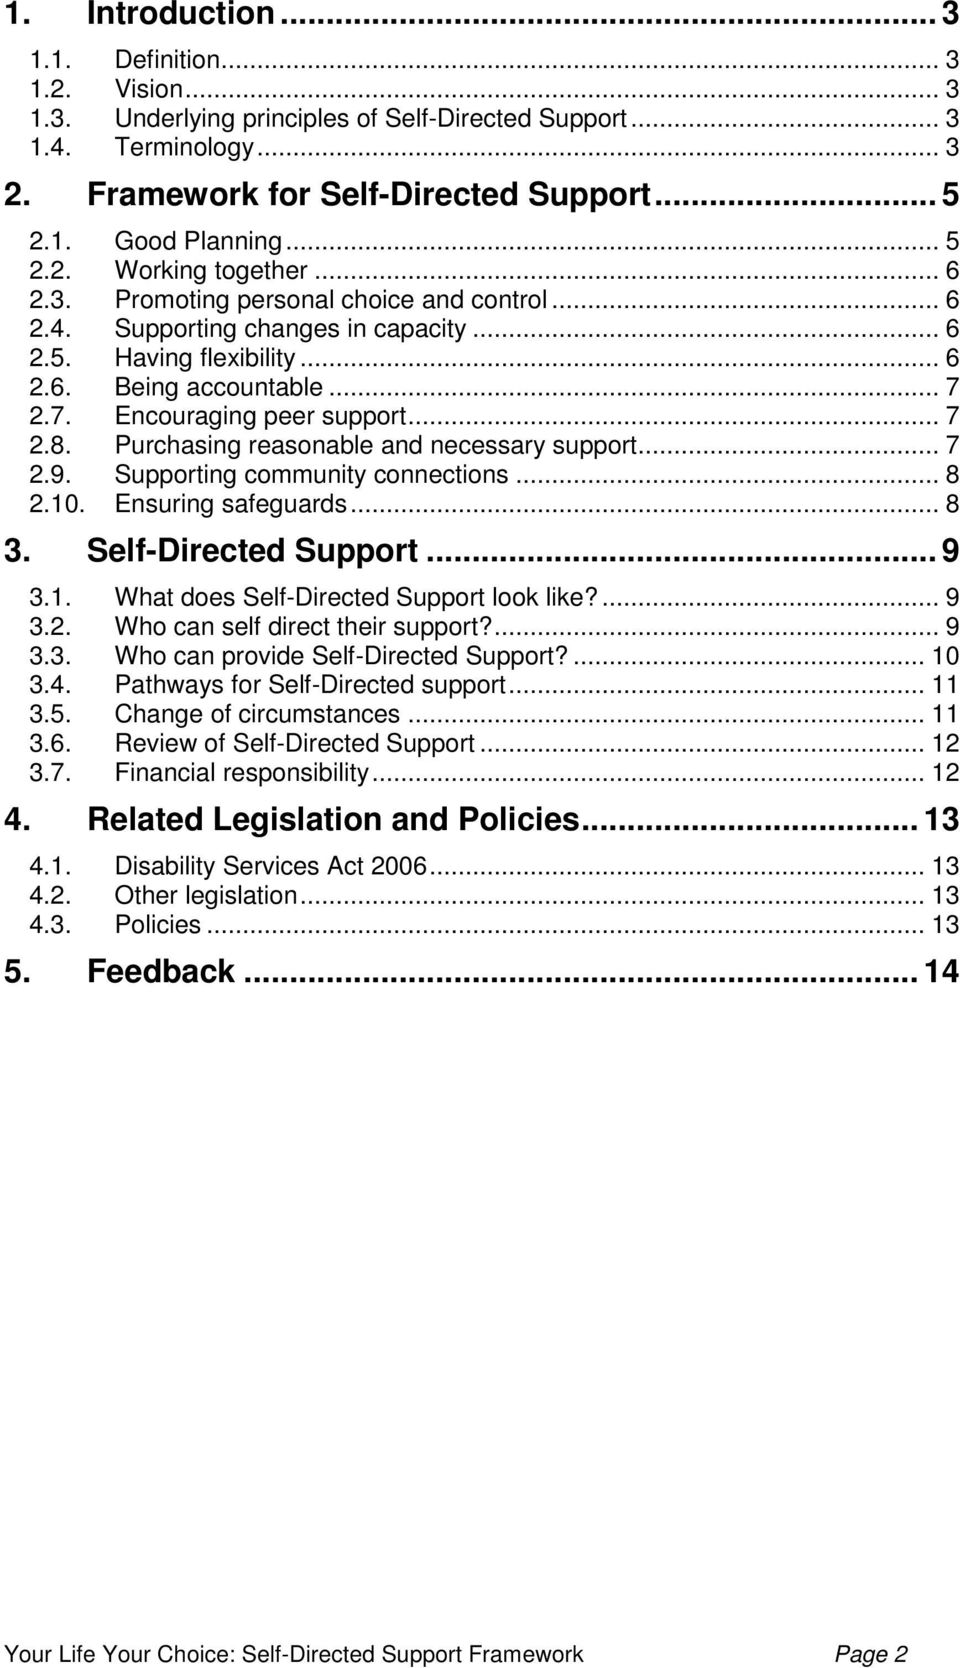 2.7. Encouraging peer support... 7 2.8. Purchasing reasonable and necessary support... 7 2.9. Supporting community connections... 8 2.10. Ensuring safeguards... 8 3. Self-Directed Support... 9 3.1. What does Self-Directed Support look like?